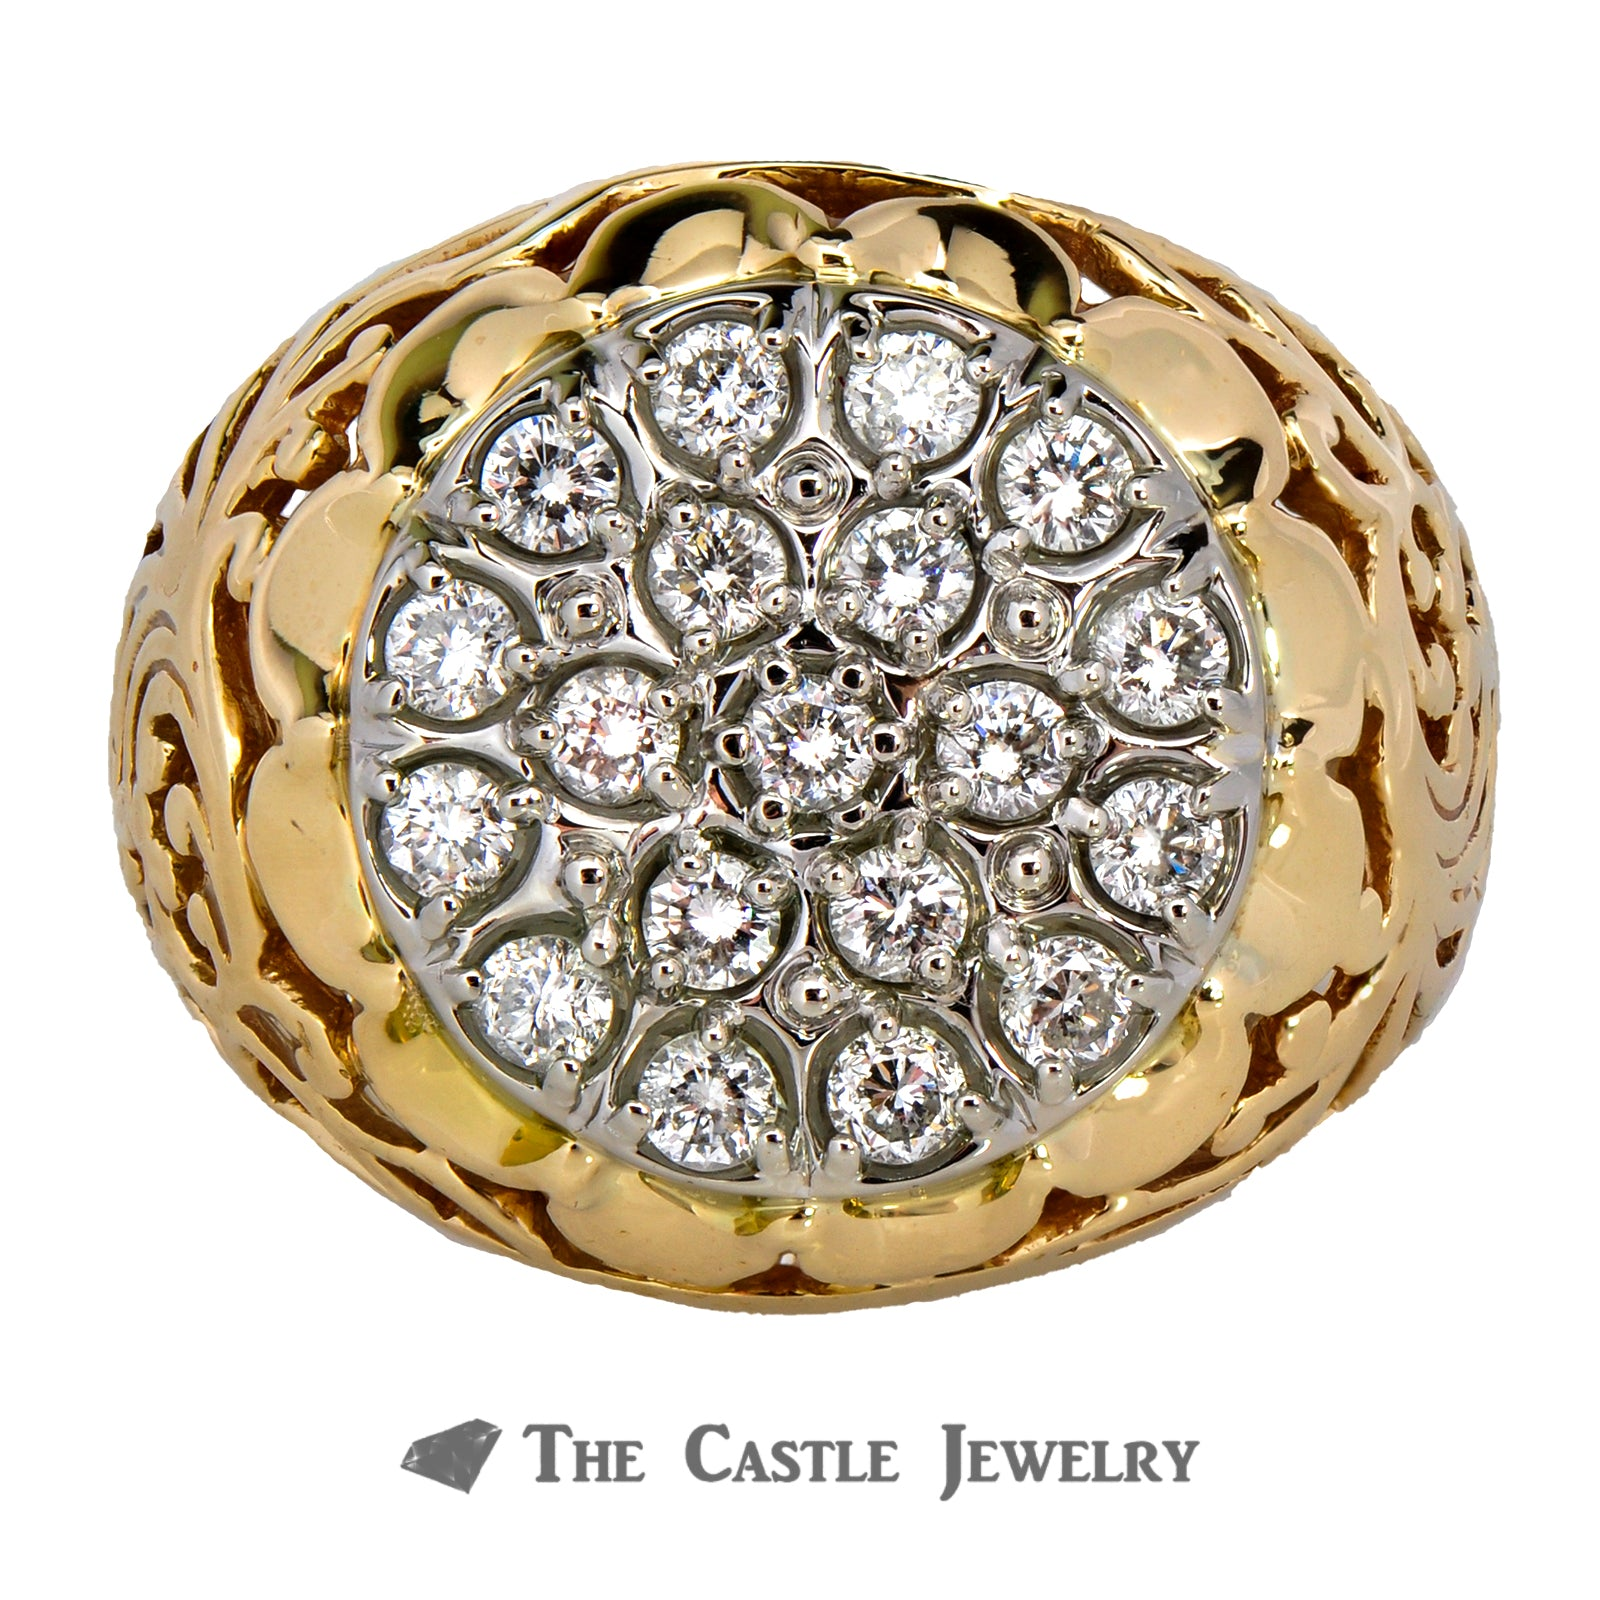 Kentucky Cluster Ring 1cttw 19 Round Brilliant Cut Diamonds in 10K Yellow Gold